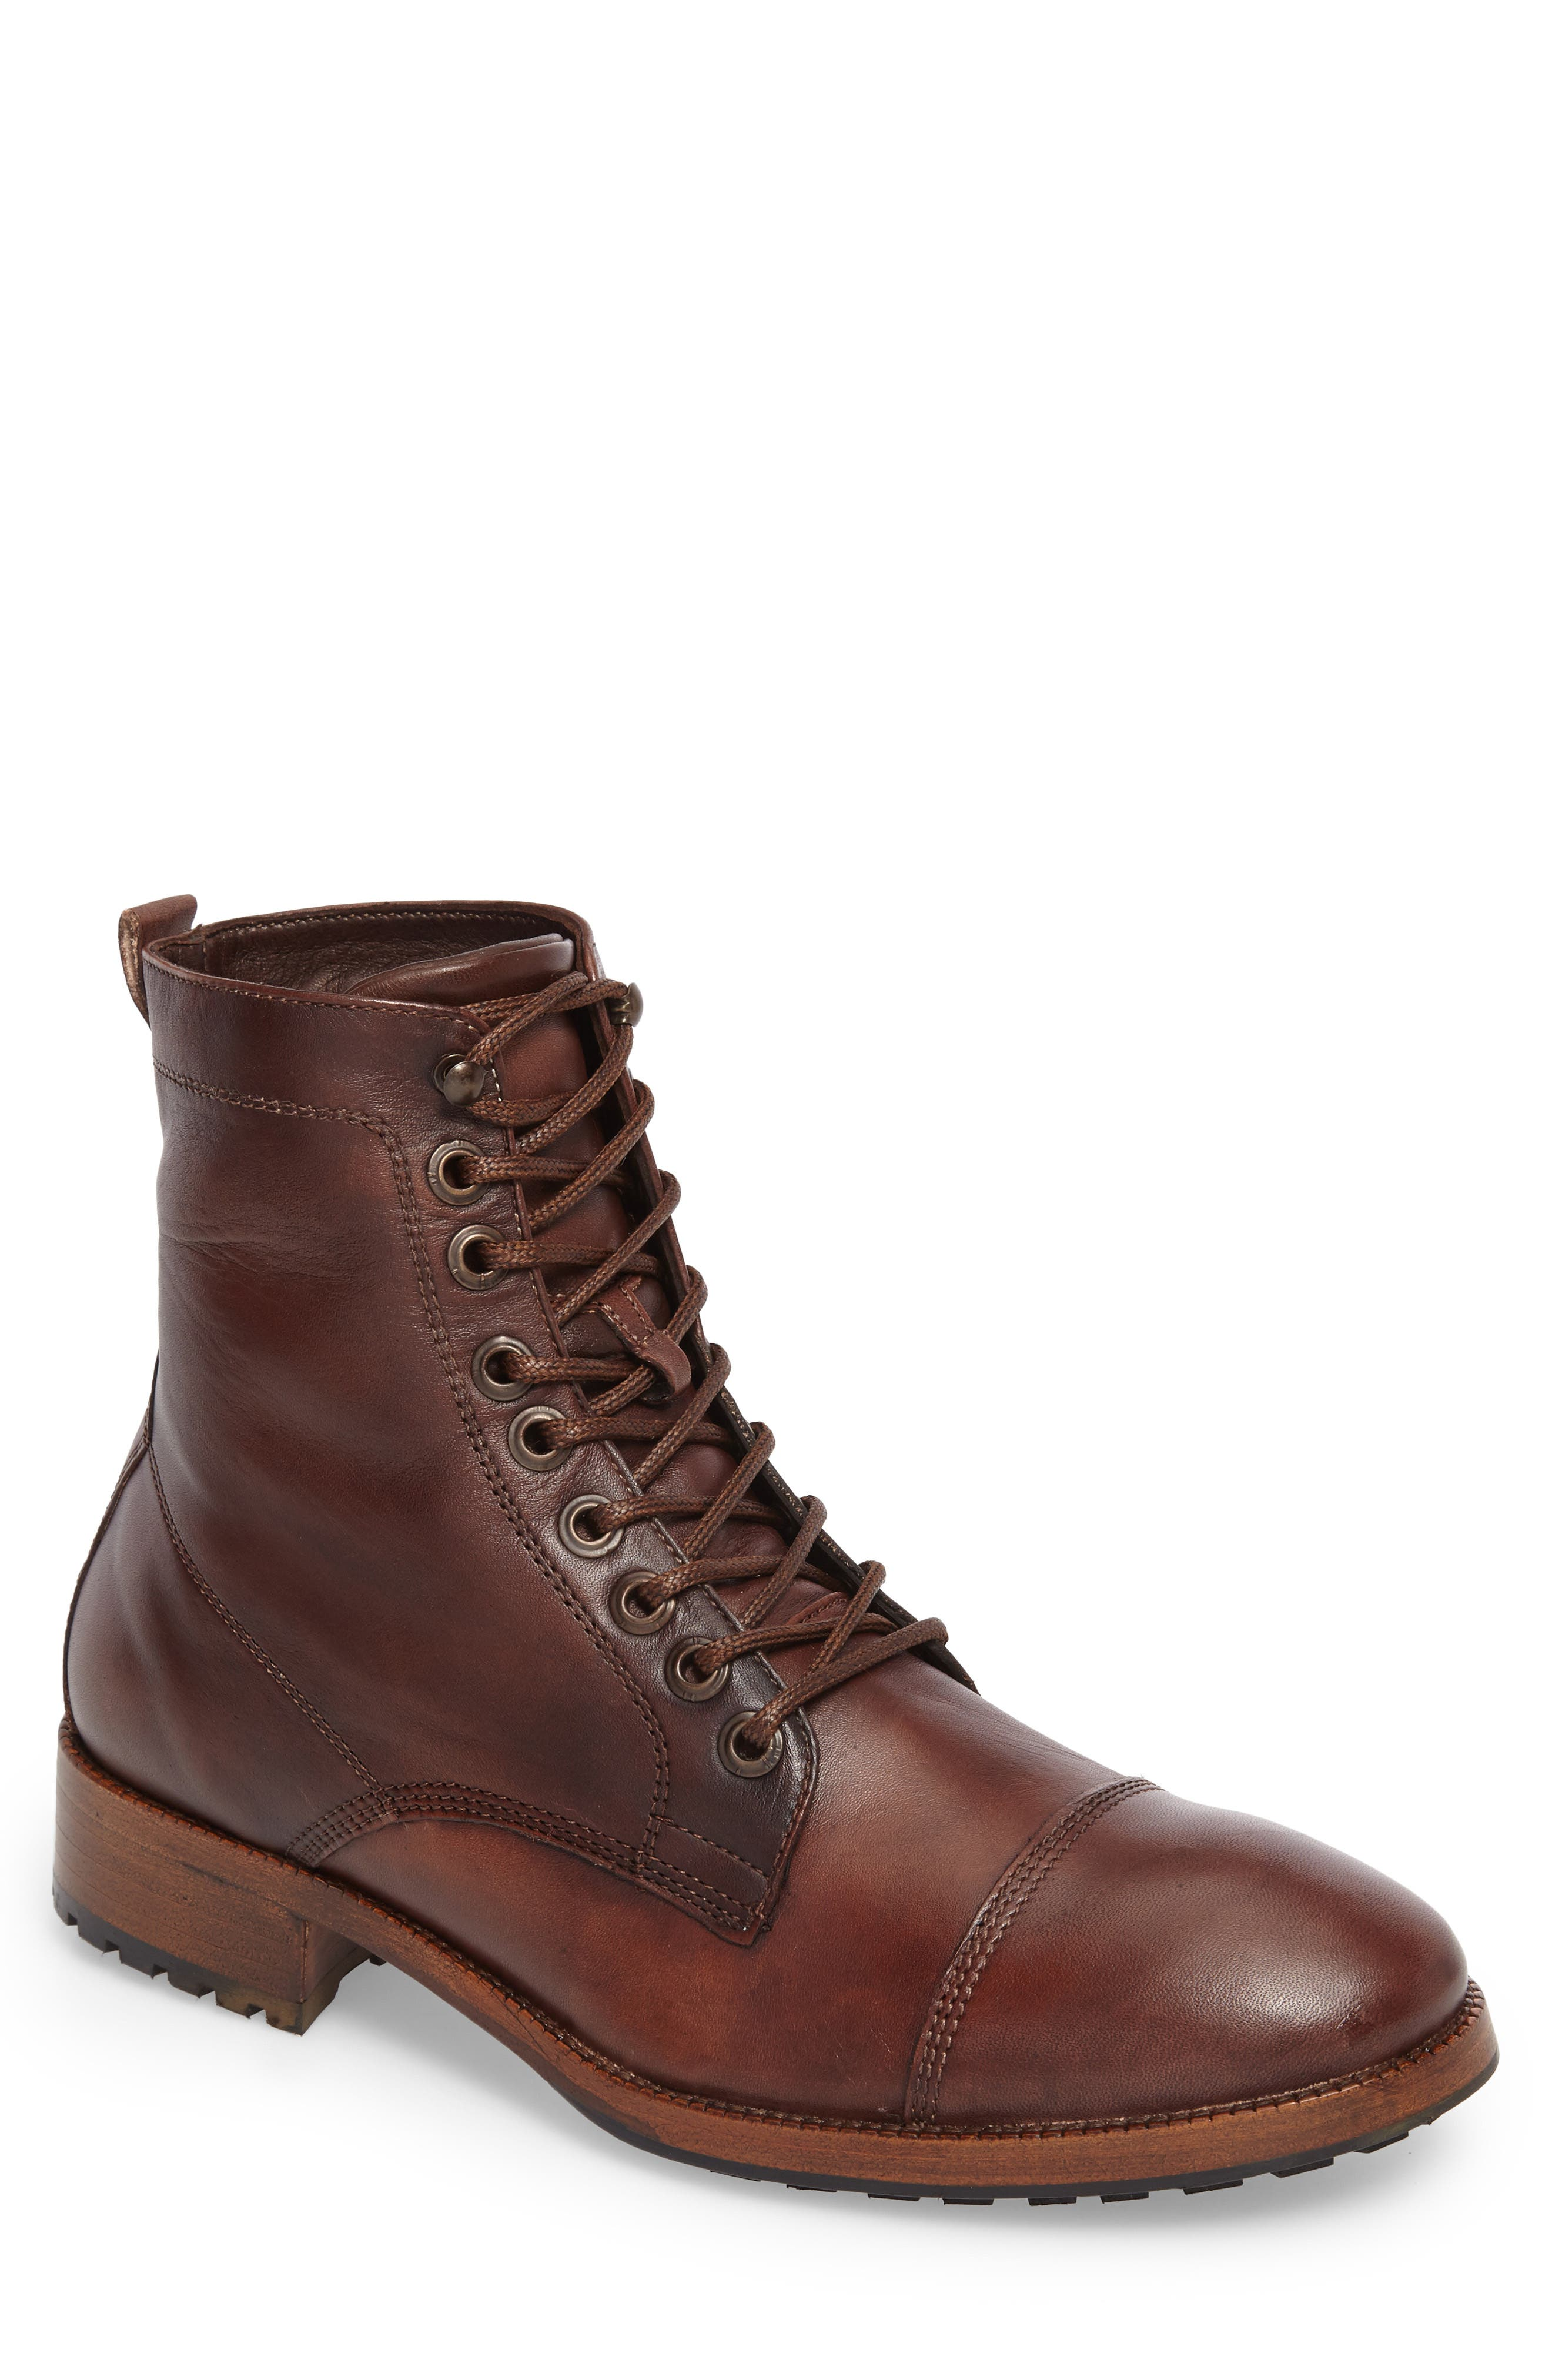 x GQ Ted Cap Toe Boot,                             Main thumbnail 1, color,                             200